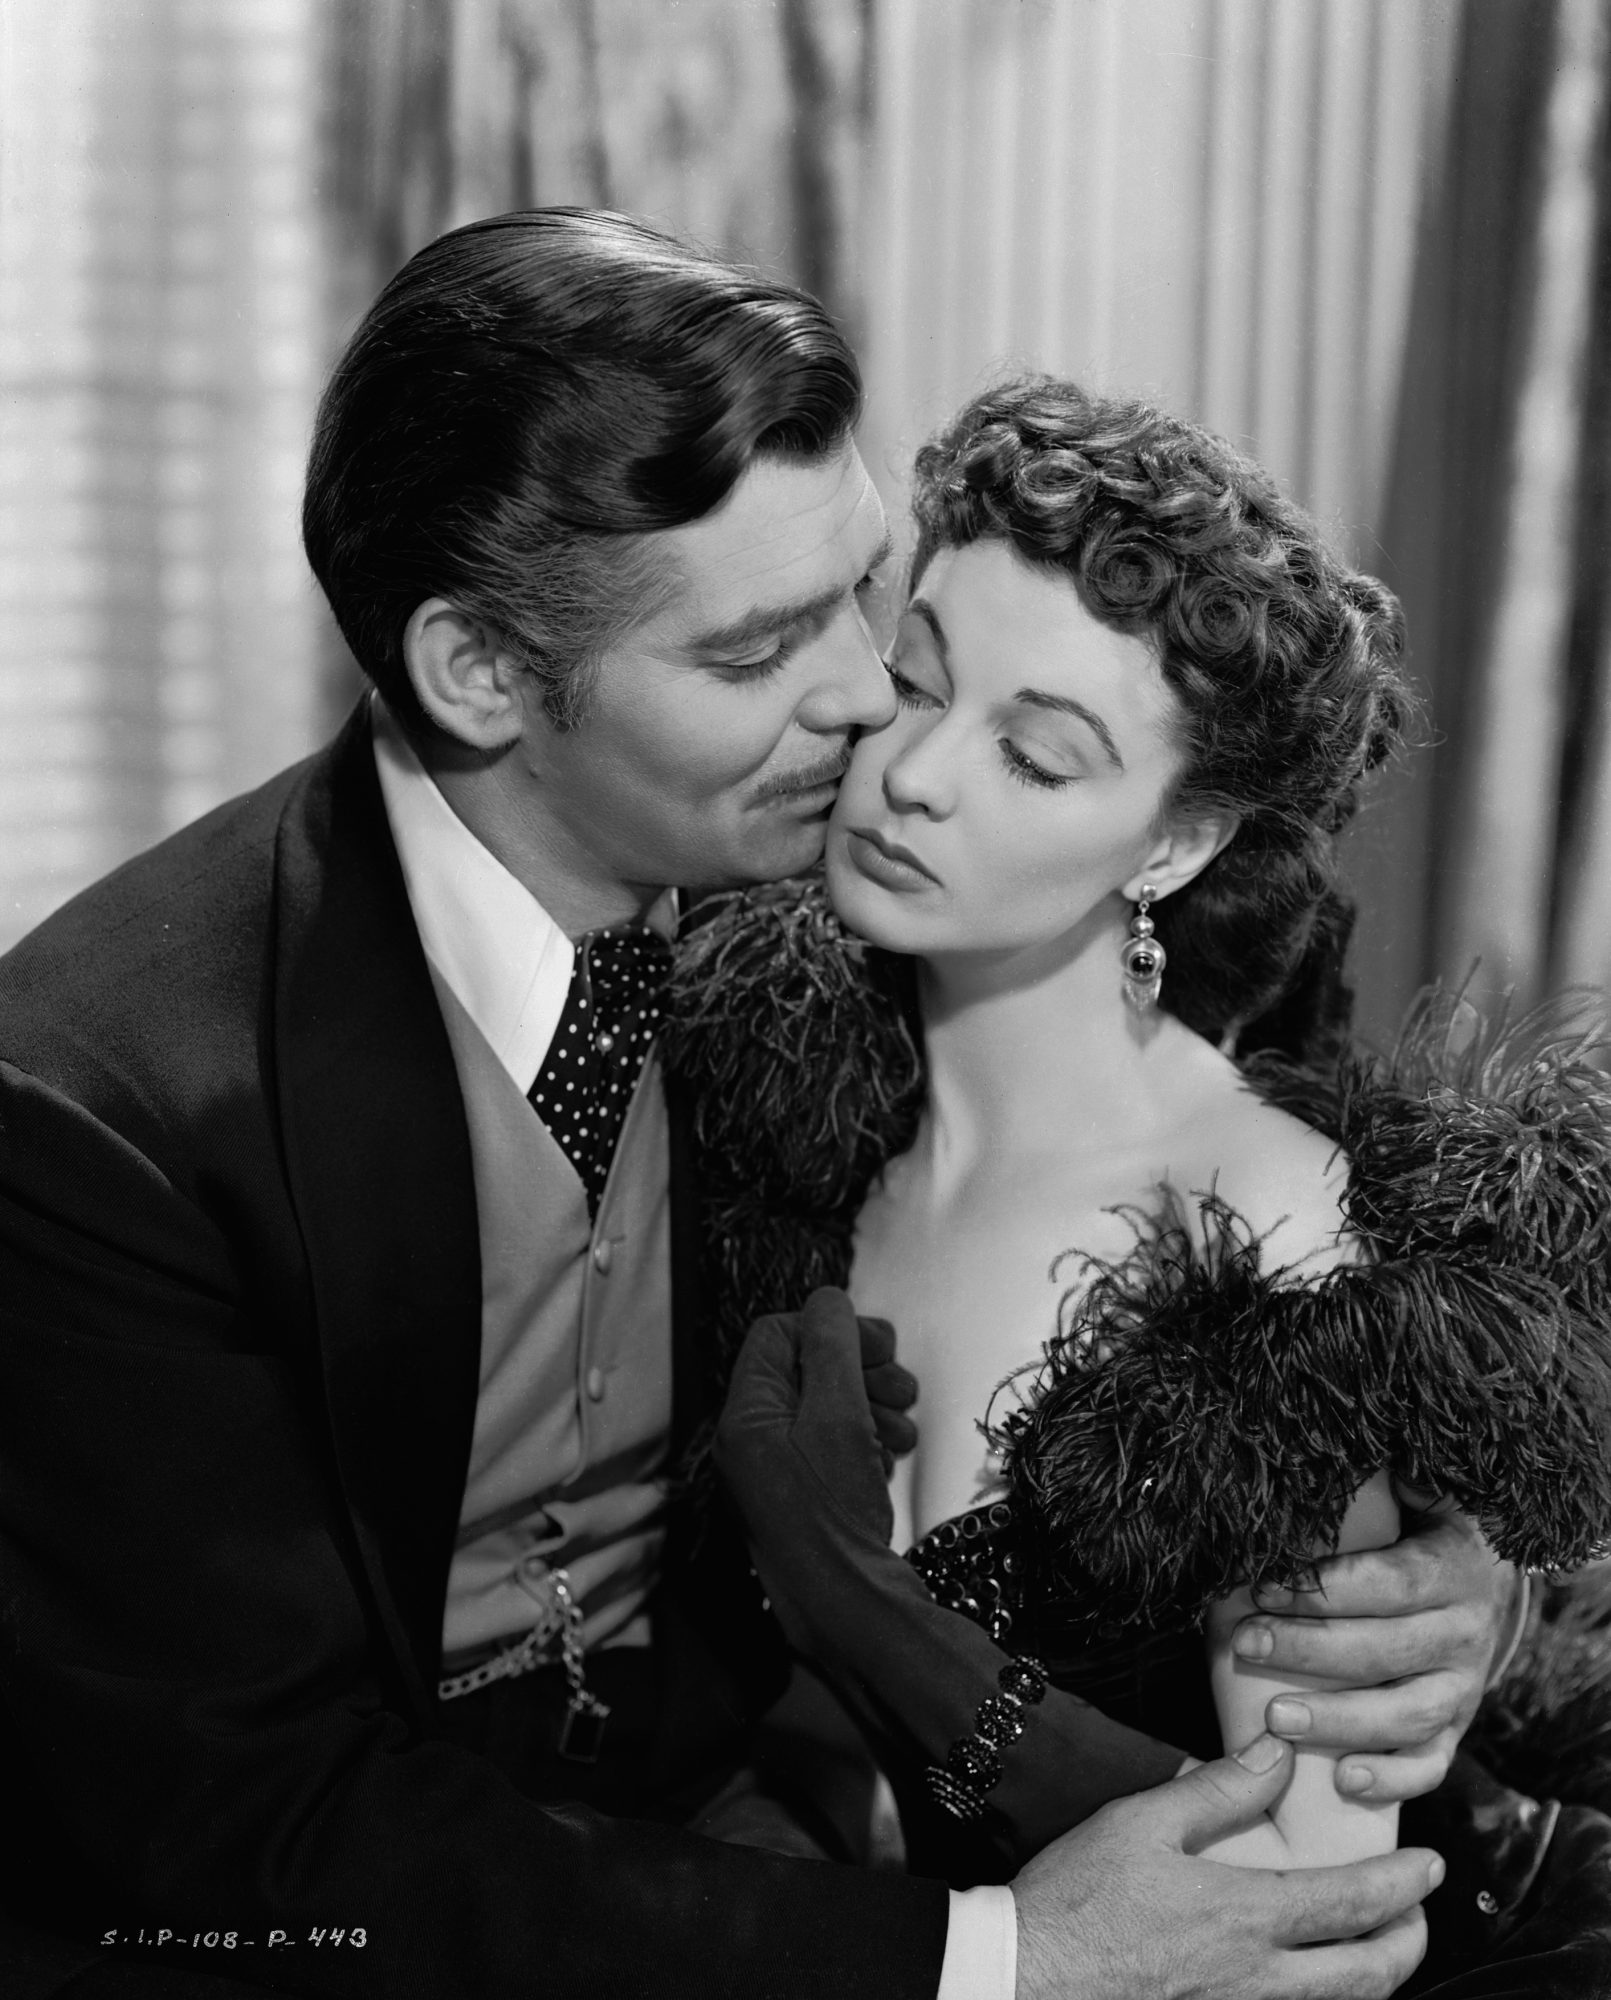 Scarlett O'Hara and Rhett Butler from Gone With The Wind